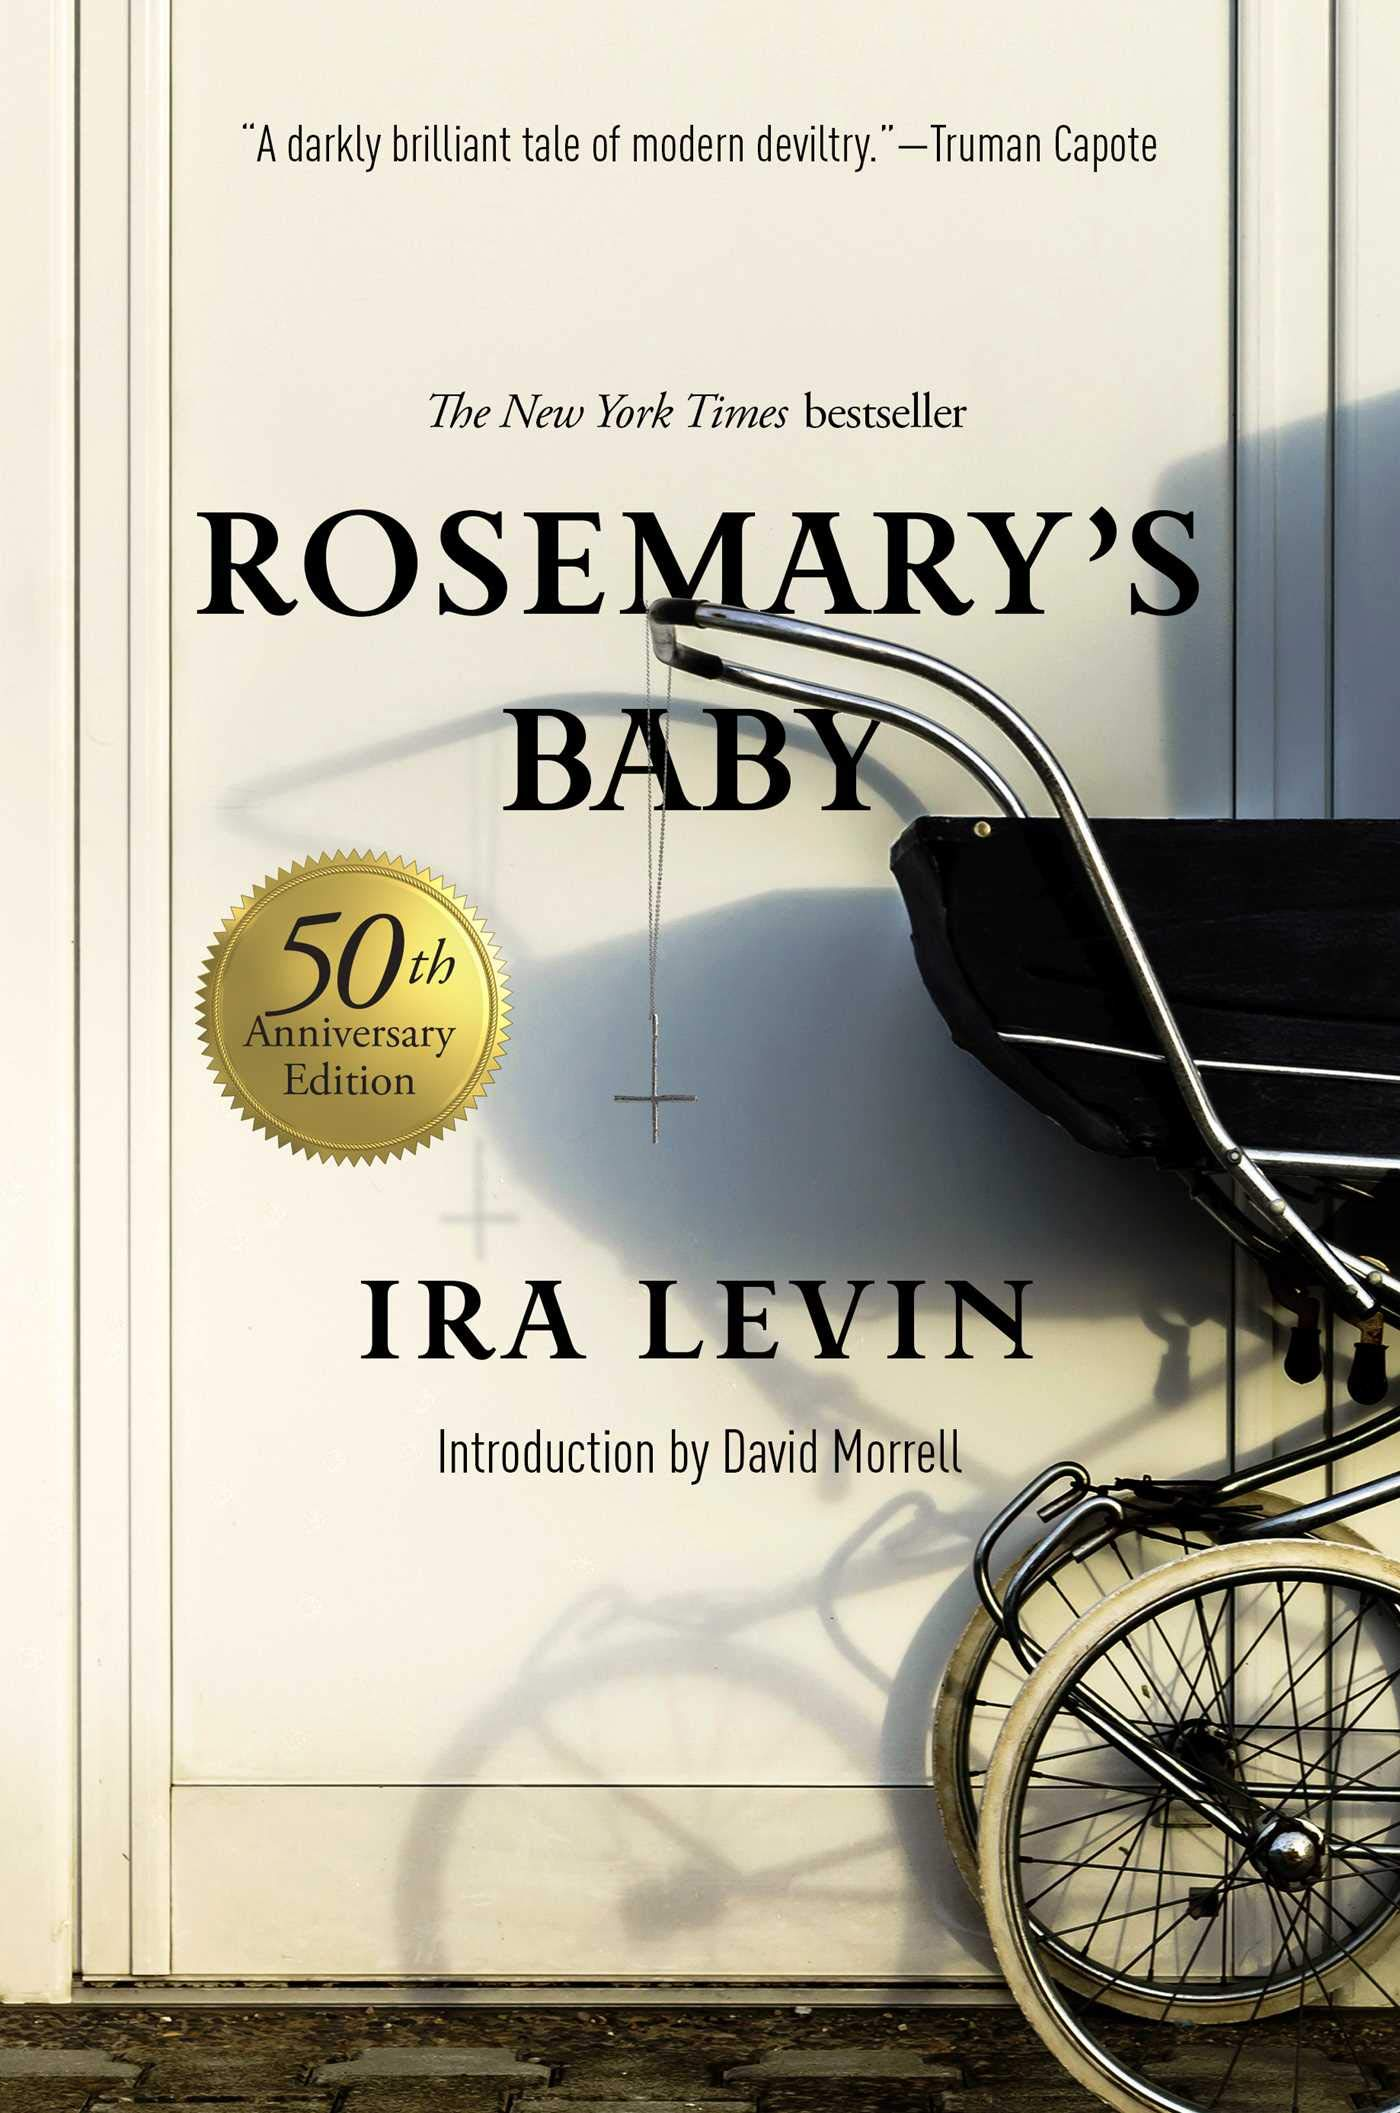 Rosemary's Baby book cover